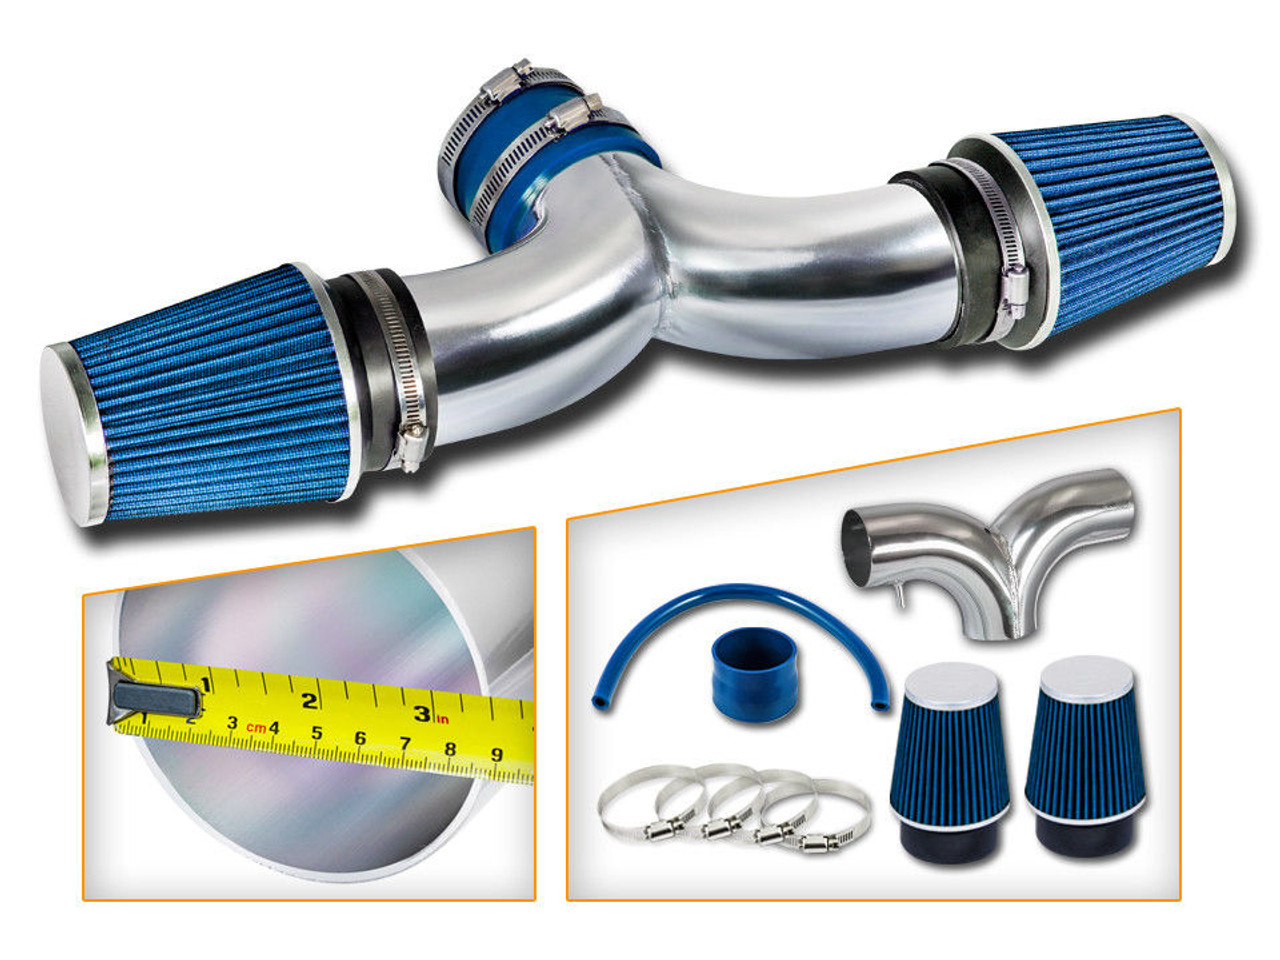 Blue Cold Air Intake Kit For Jeep Liberty 20042009 With 37l: 2009 Jeep Liberty Exhaust At Woreks.co